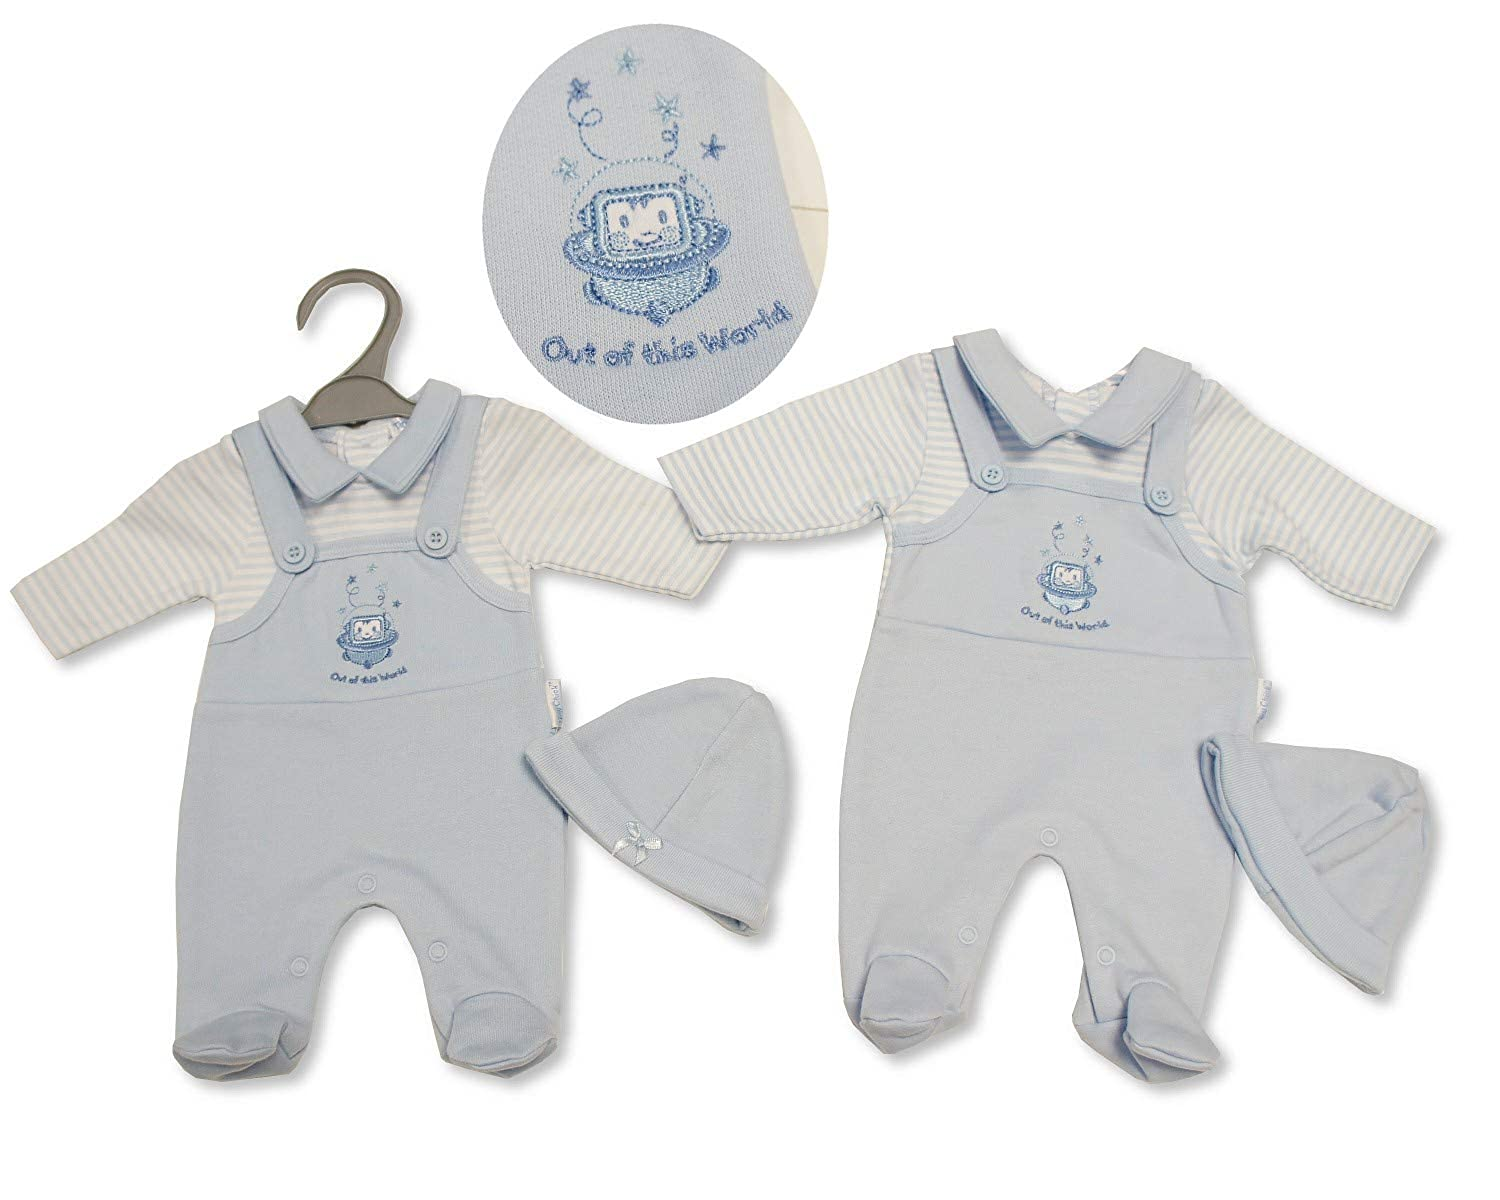 Nursery Time Tiny Baby 3-5 lbs Premature Dungarees Boys Blue Striped All in One Hat Space 328